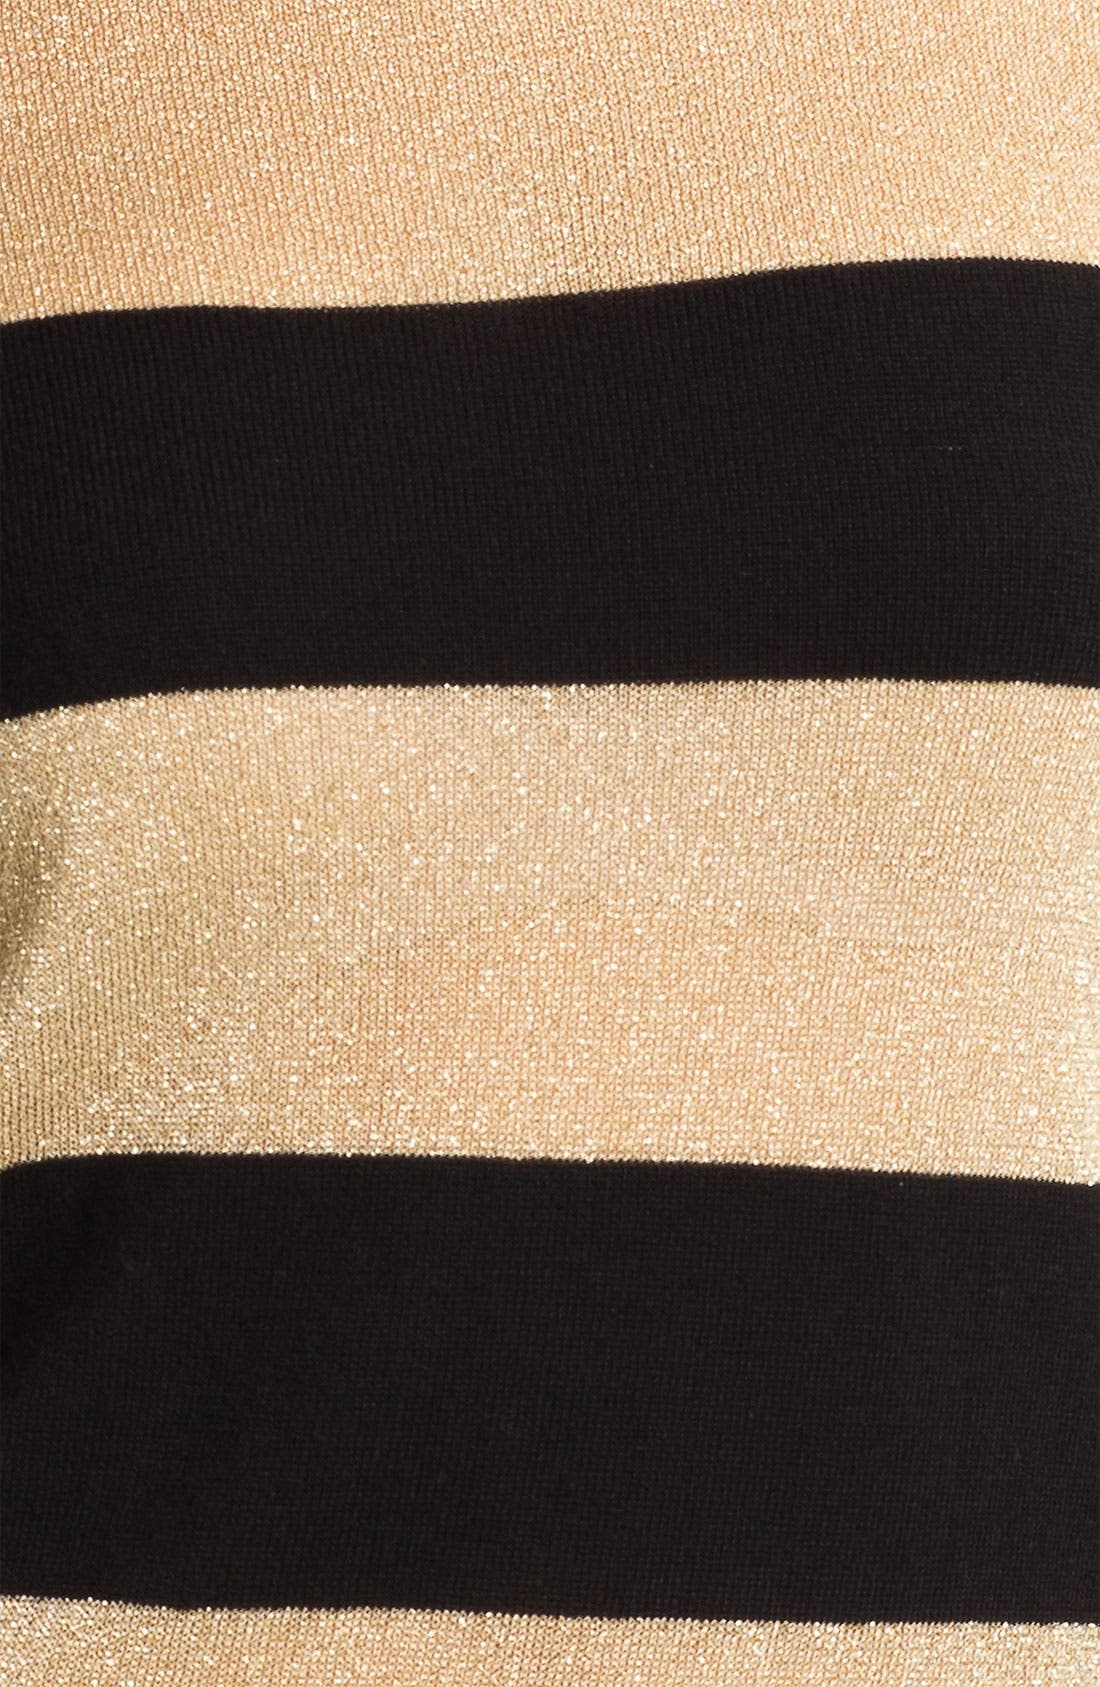 Alternate Image 3  - Vince Camuto Metallic Stripe Sweater